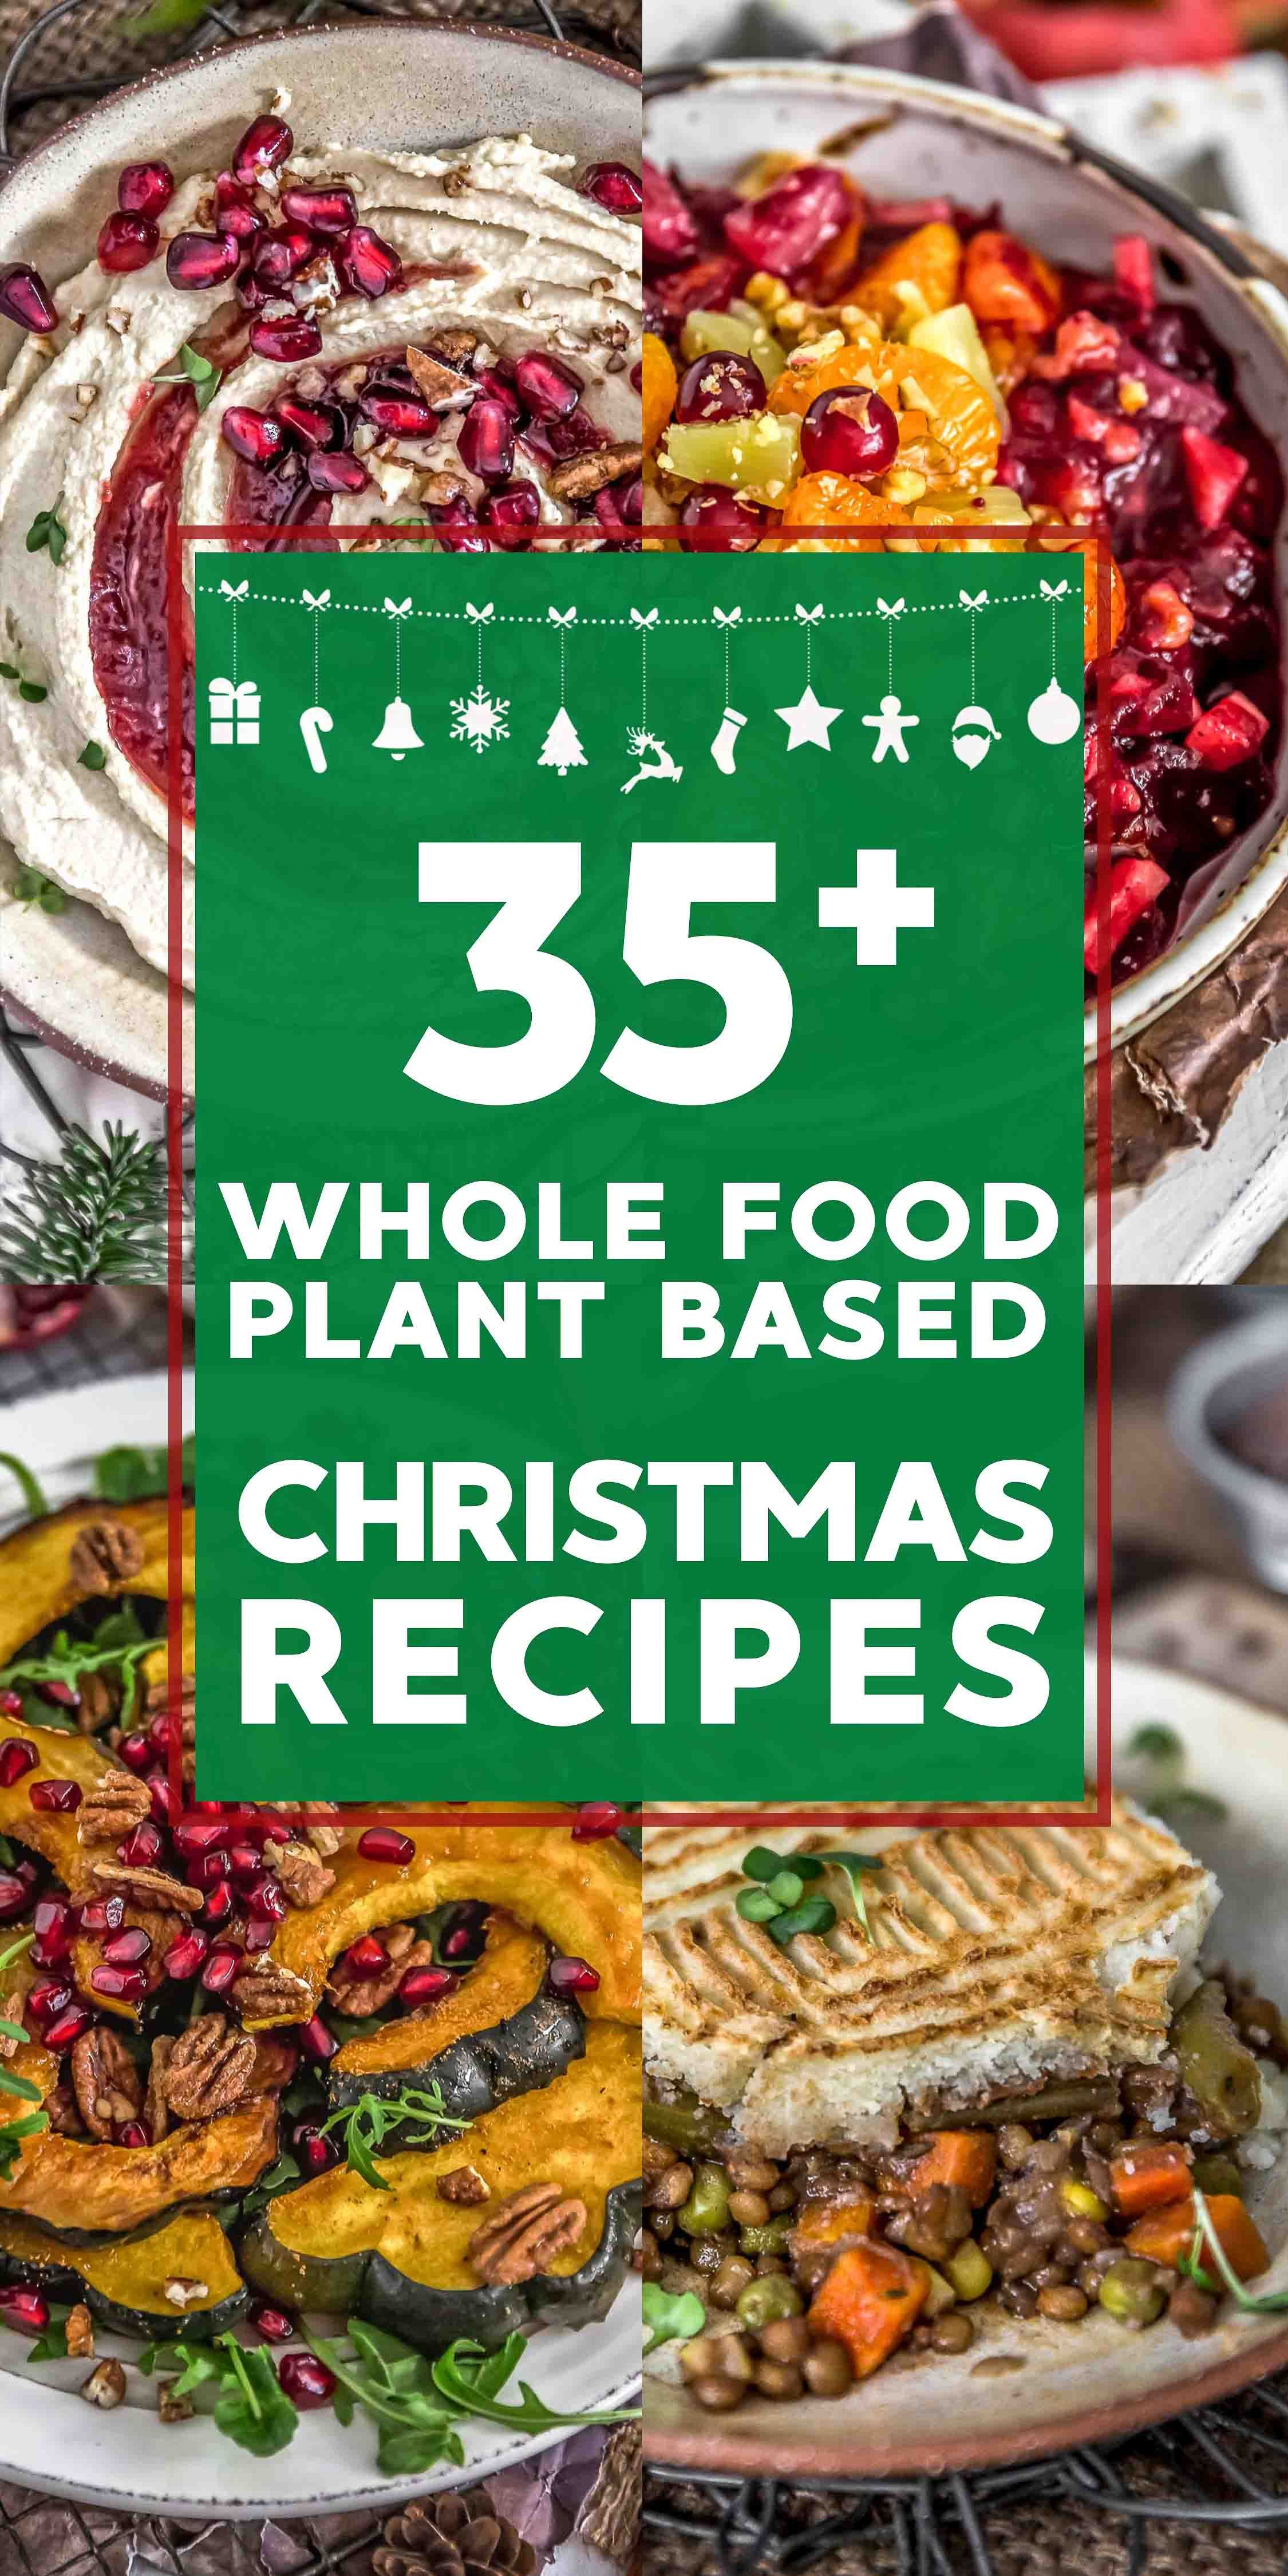 35 Whole Food Plant Based Christmas Recipes In 2020 Christmas Food Dinner Vegan Christmas Dinner Whole Food Recipes